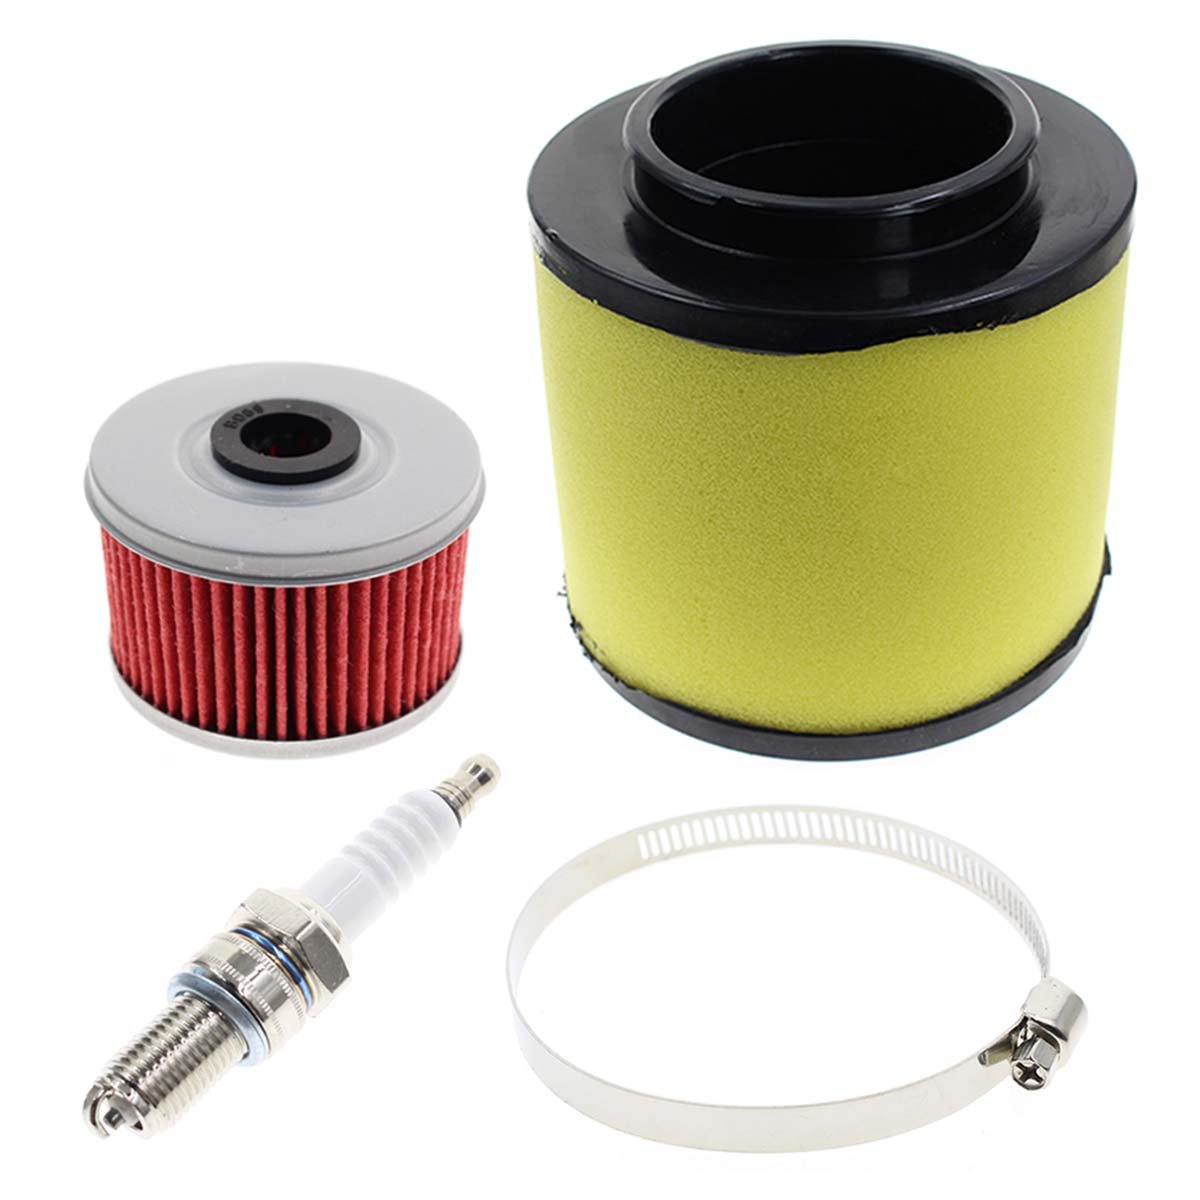 amazon com autokay air filter tune up kit for honda atv trx250amazon com autokay air filter tune up kit for honda atv trx250 trx250te recon trx250ex trx250x recon 250 17254 hm8 000 automotive